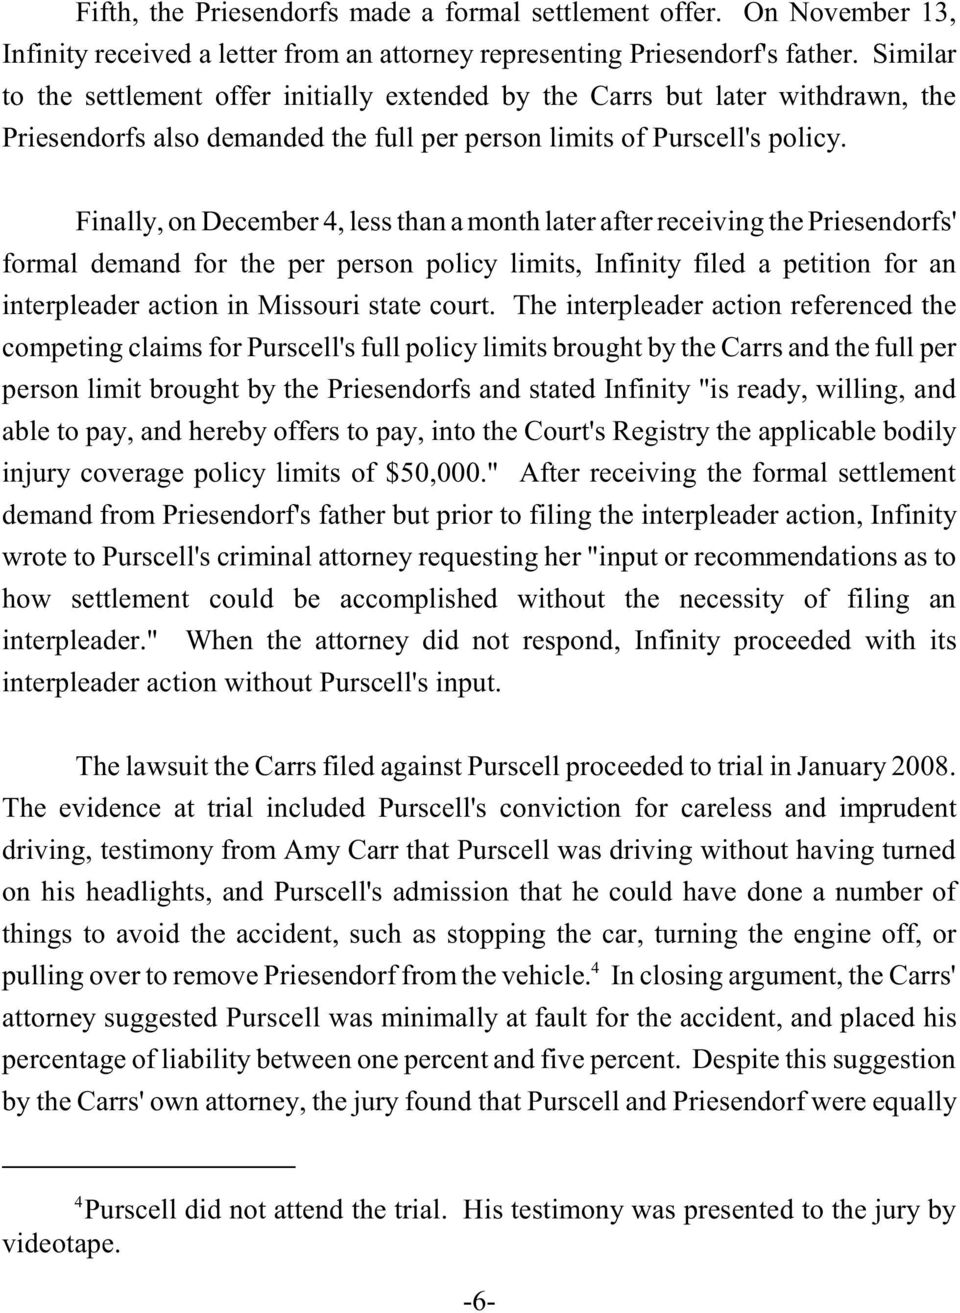 Finally, on December 4, less than a month later after receiving the Priesendorfs' formal demand for the per person policy limits, Infinity filed a petition for an interpleader action in Missouri